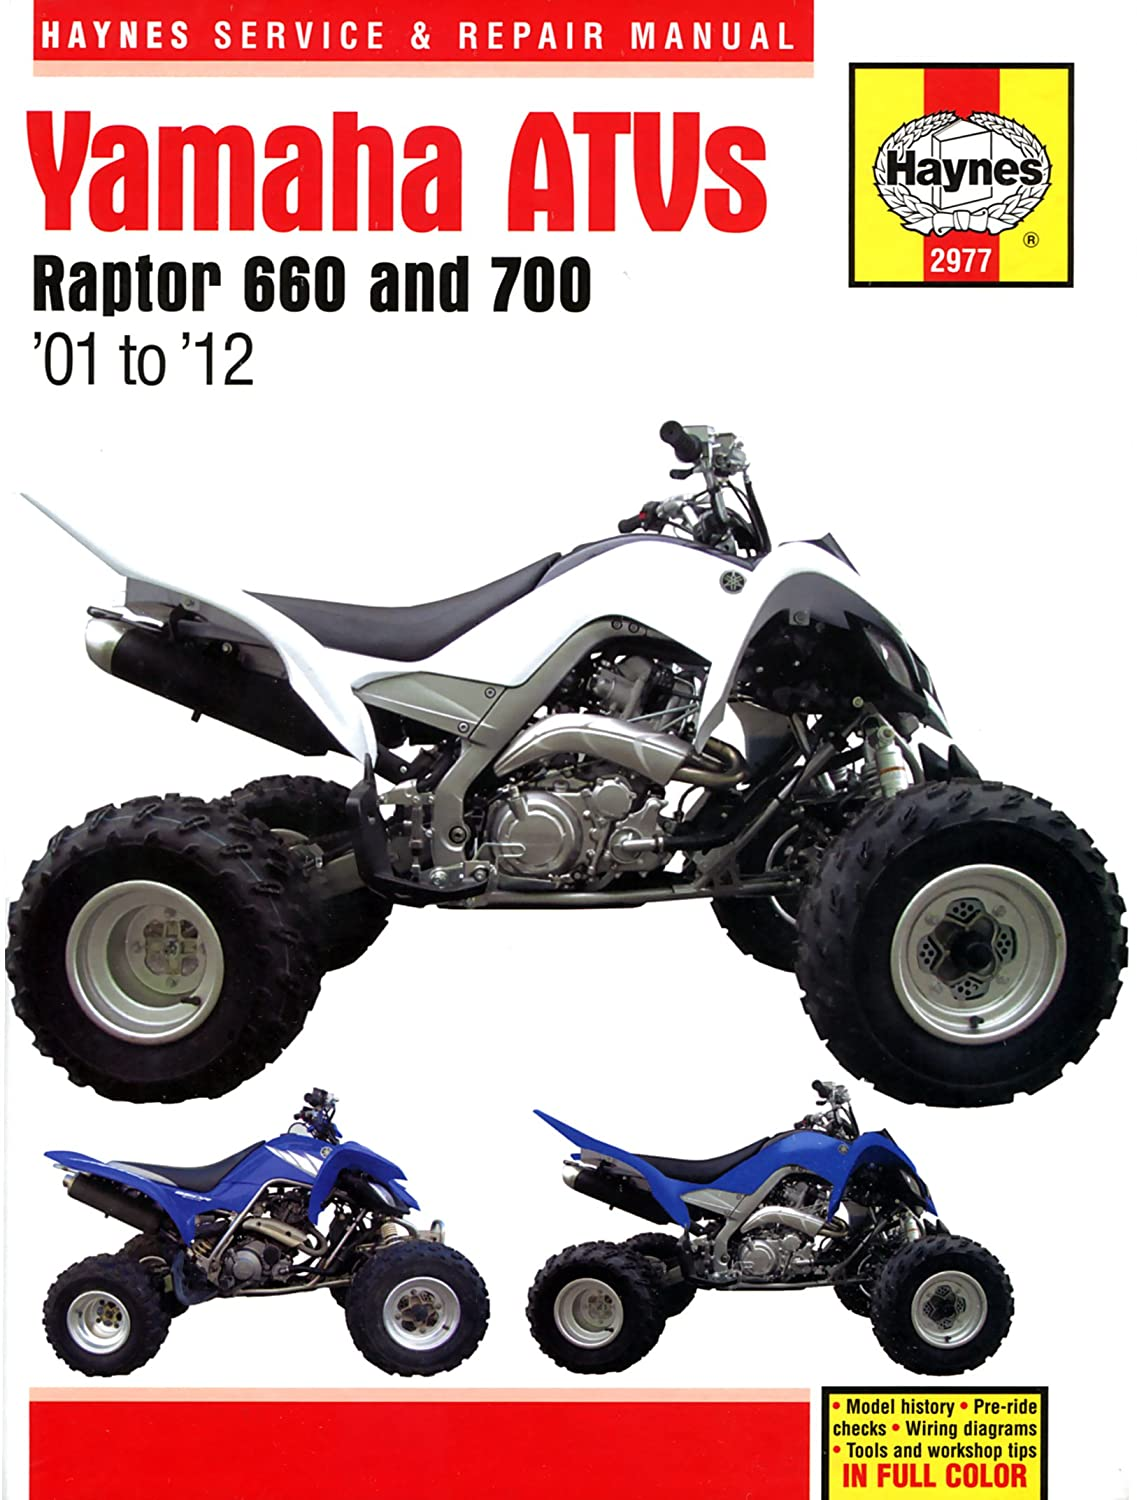 Yamaha Yfm 660 700 Raptor Repair Manual Haynes Service Wr125x Wiring Diagram Workshop 2001 2012 Car Motorbike